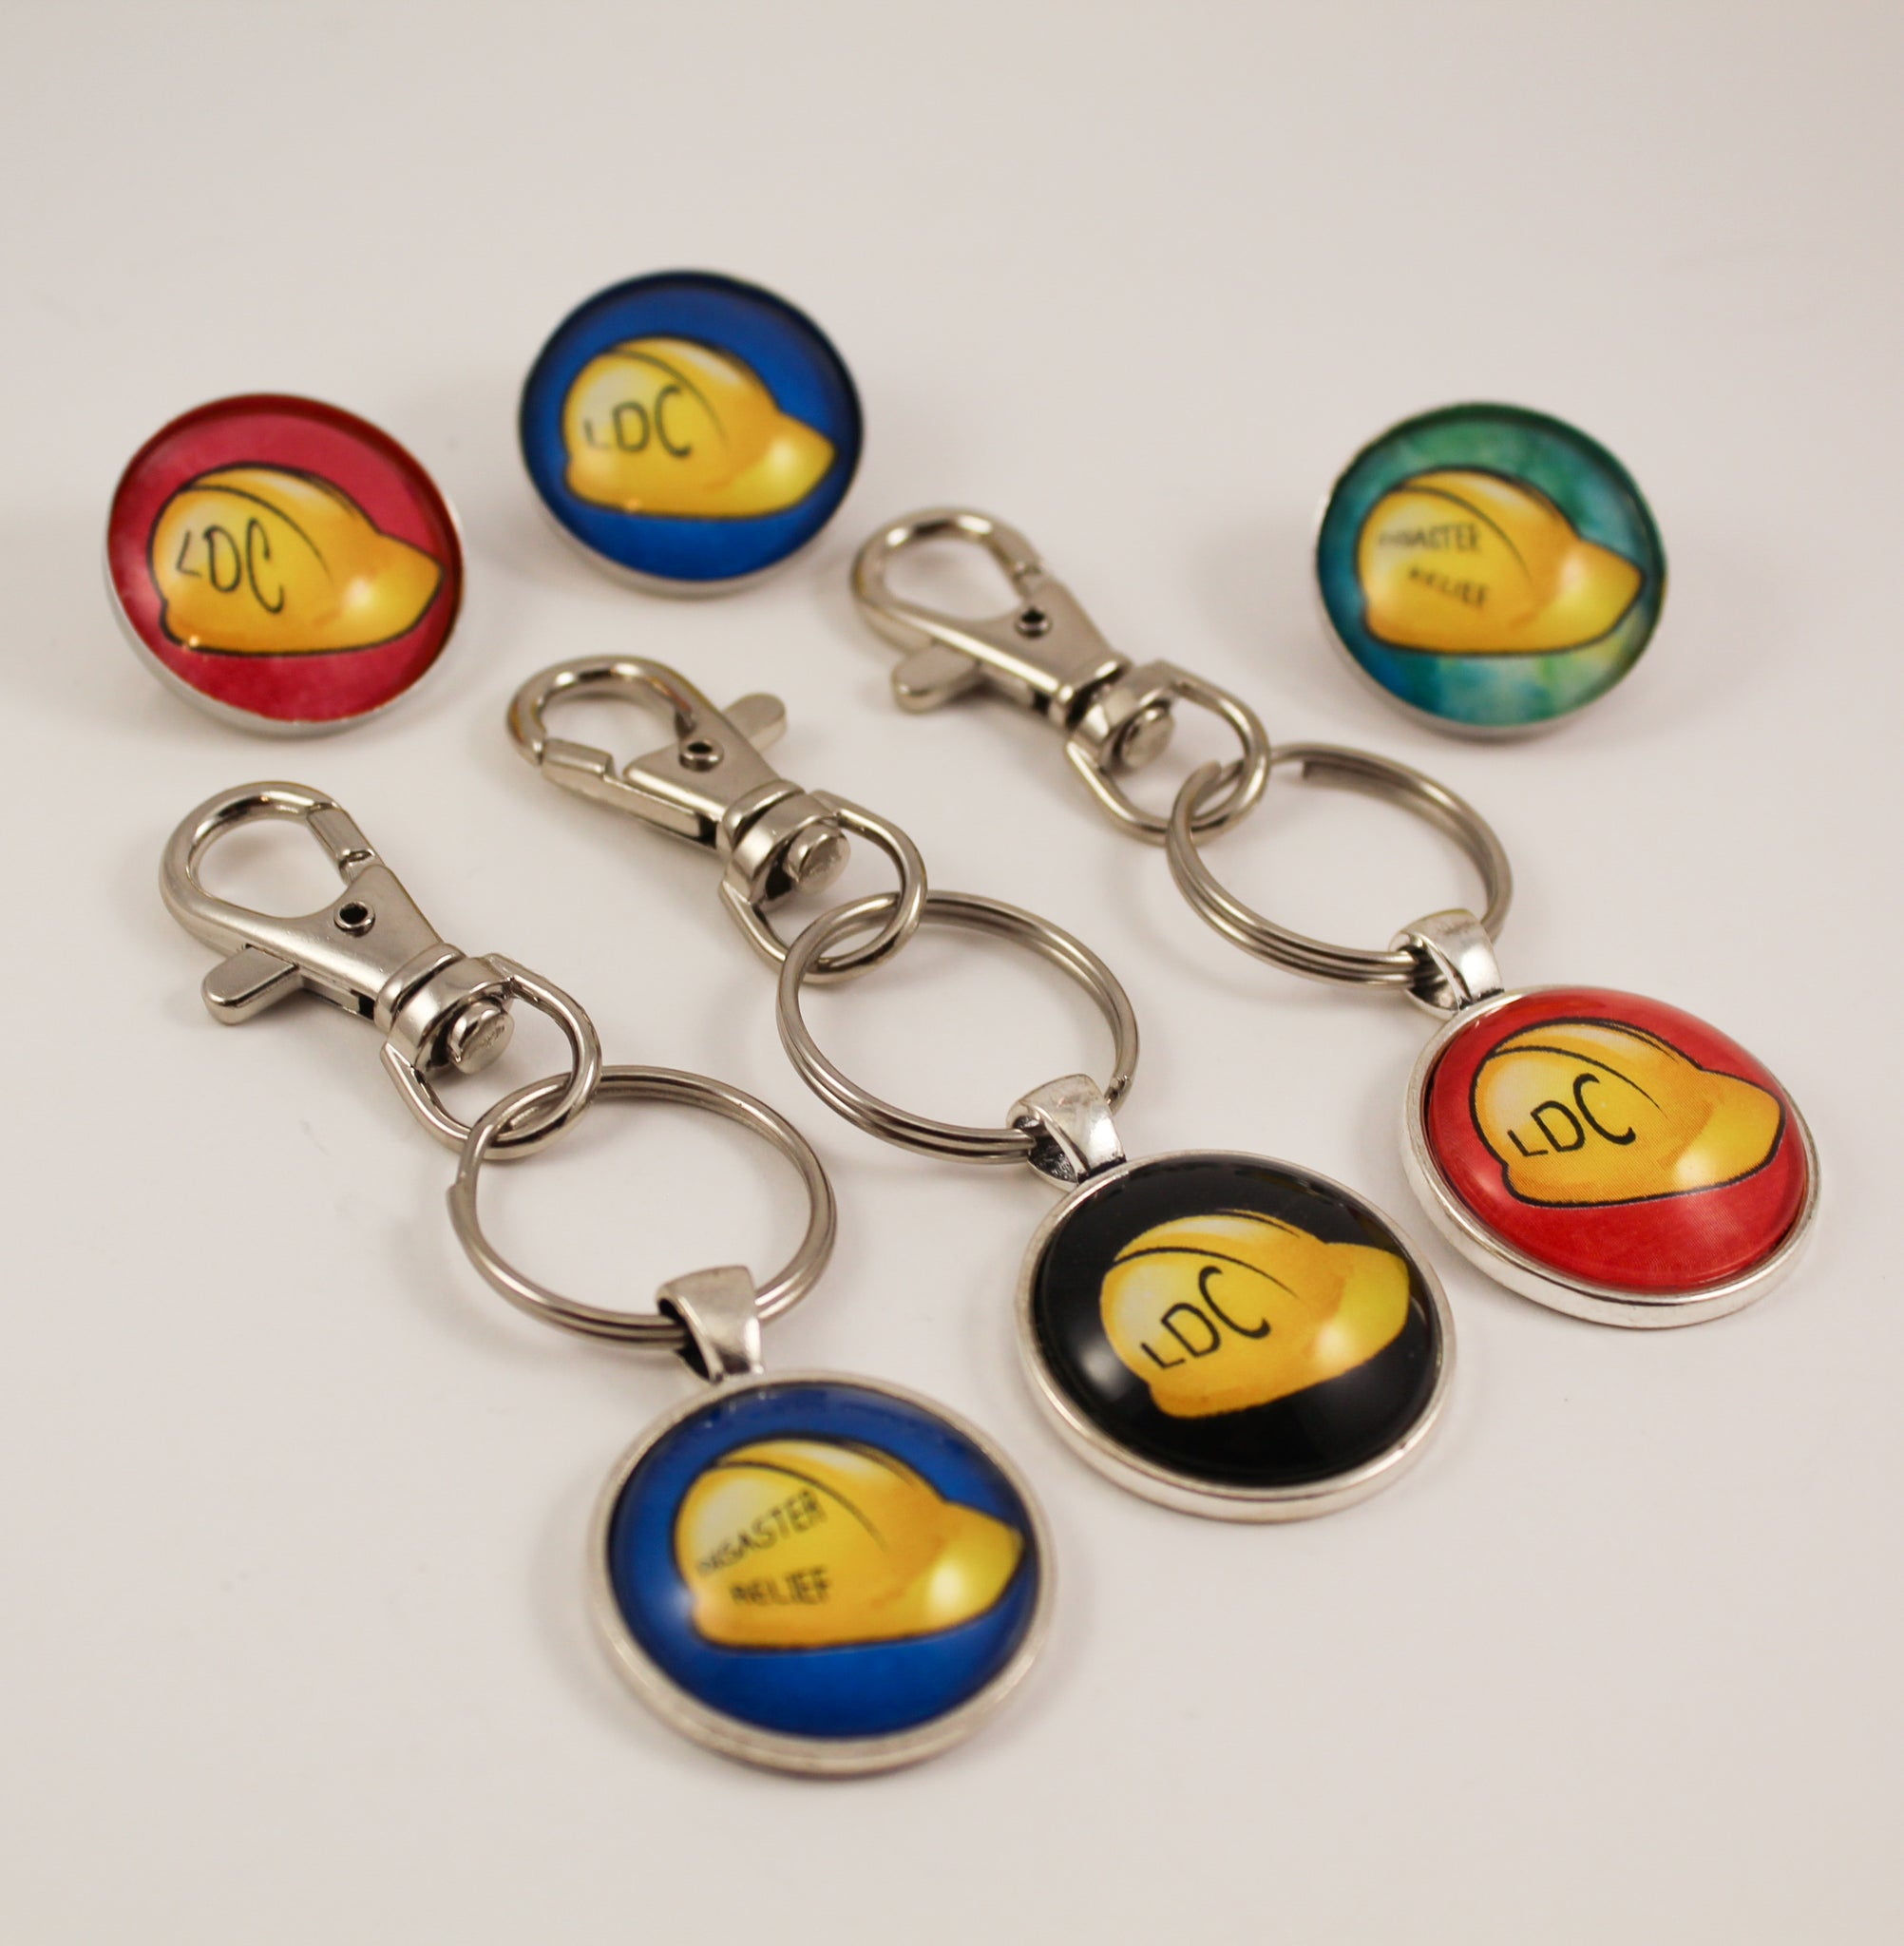 LDC and Disaster Relief Gifts- Choose Pin or Key Ring